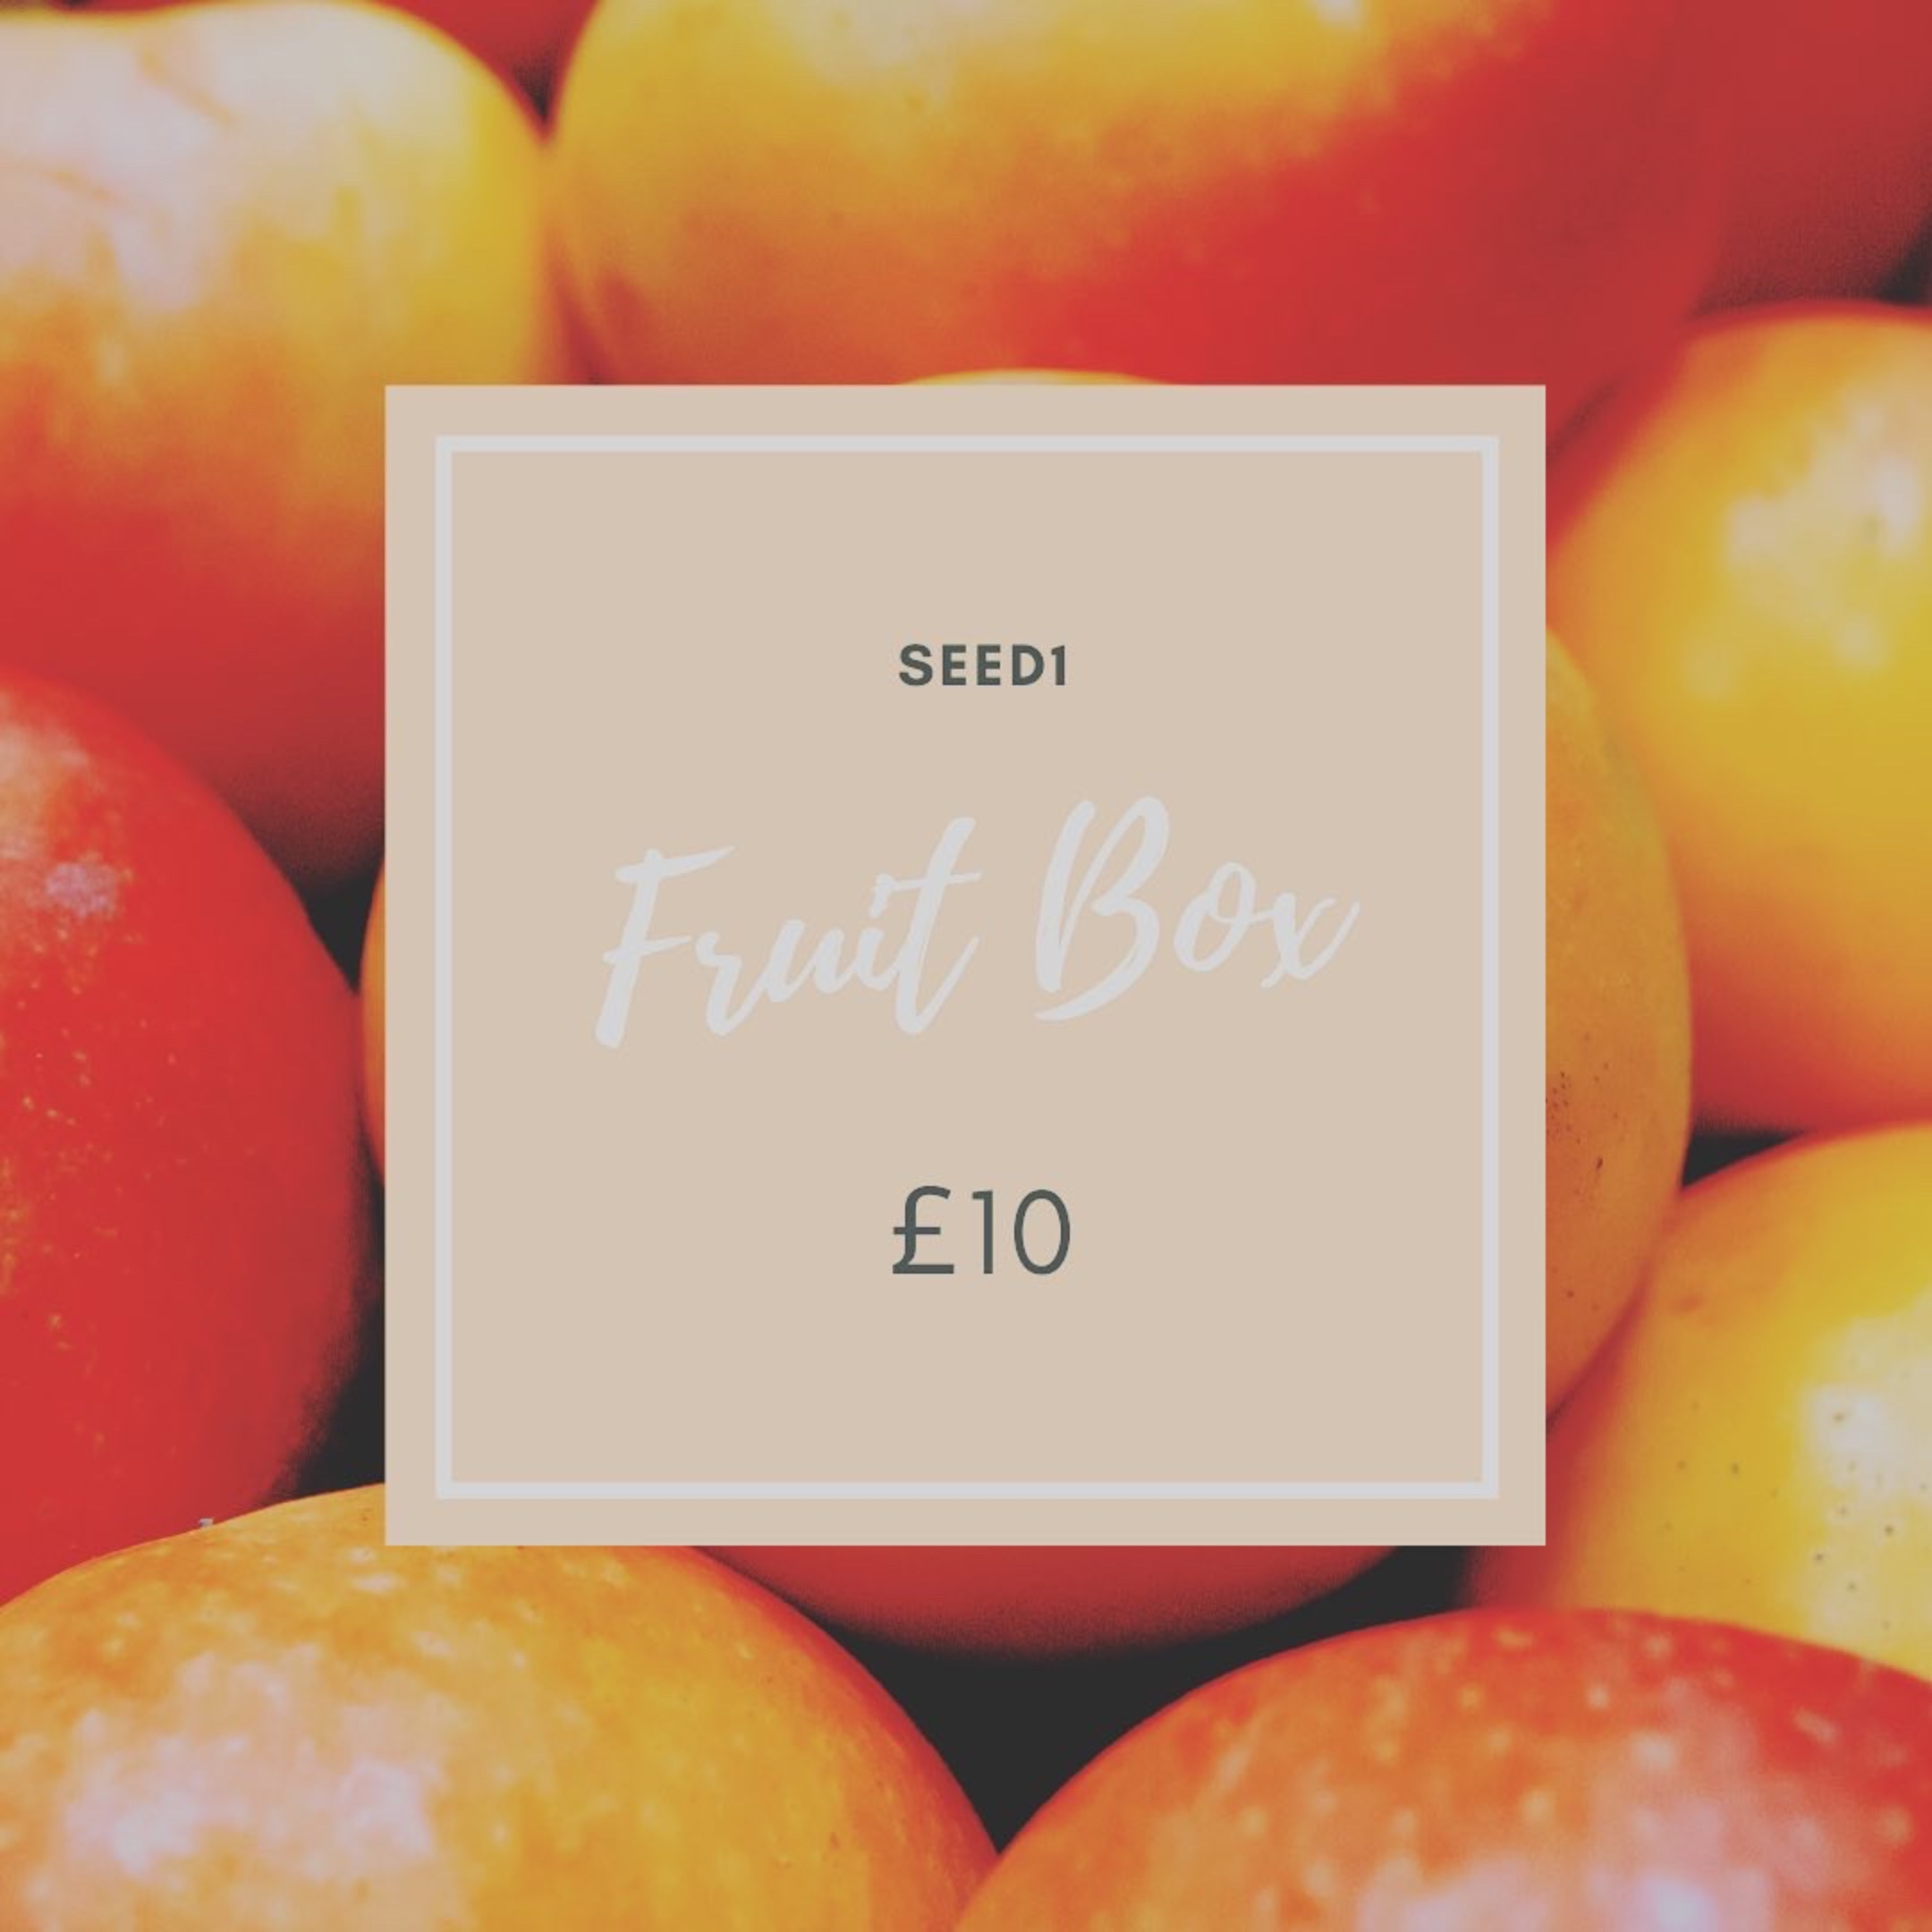 Fruit box £10. Email deliveries@seed1.co.uk to order.